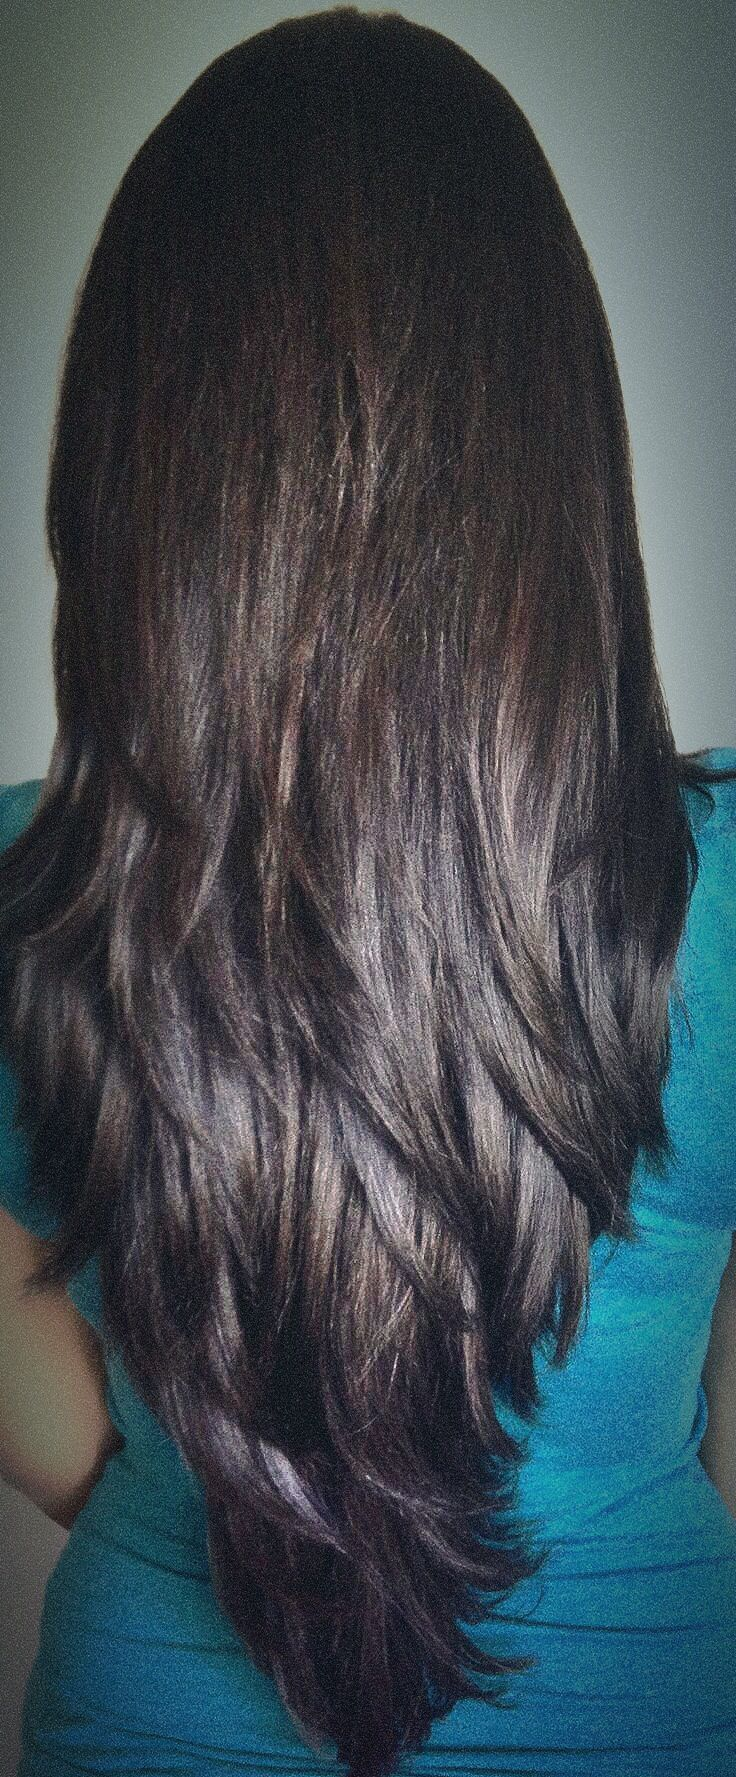 long layered haircut for thick hair cut in long distinct layers which curve naturally for an added textured effect and shape a shattered V-line at the ends